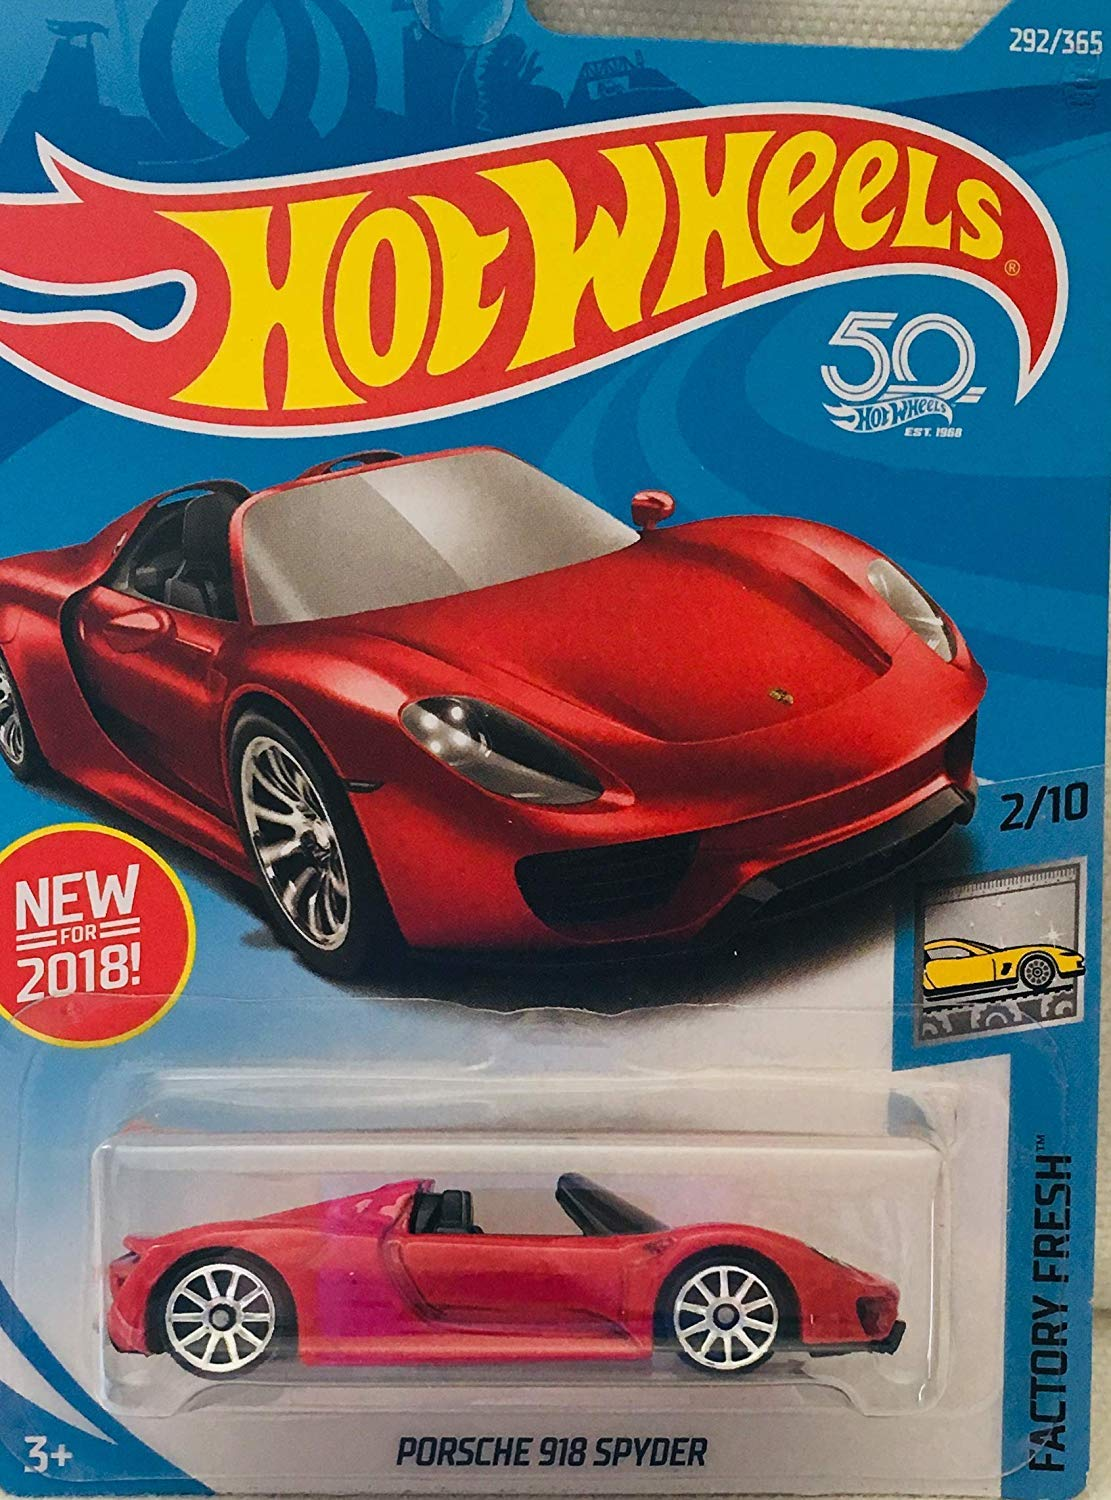 Hot Wheels Factory Fresh 2/10, RED Porsche 918 Spyder 292/365 Tarjeta del 50 aniversario